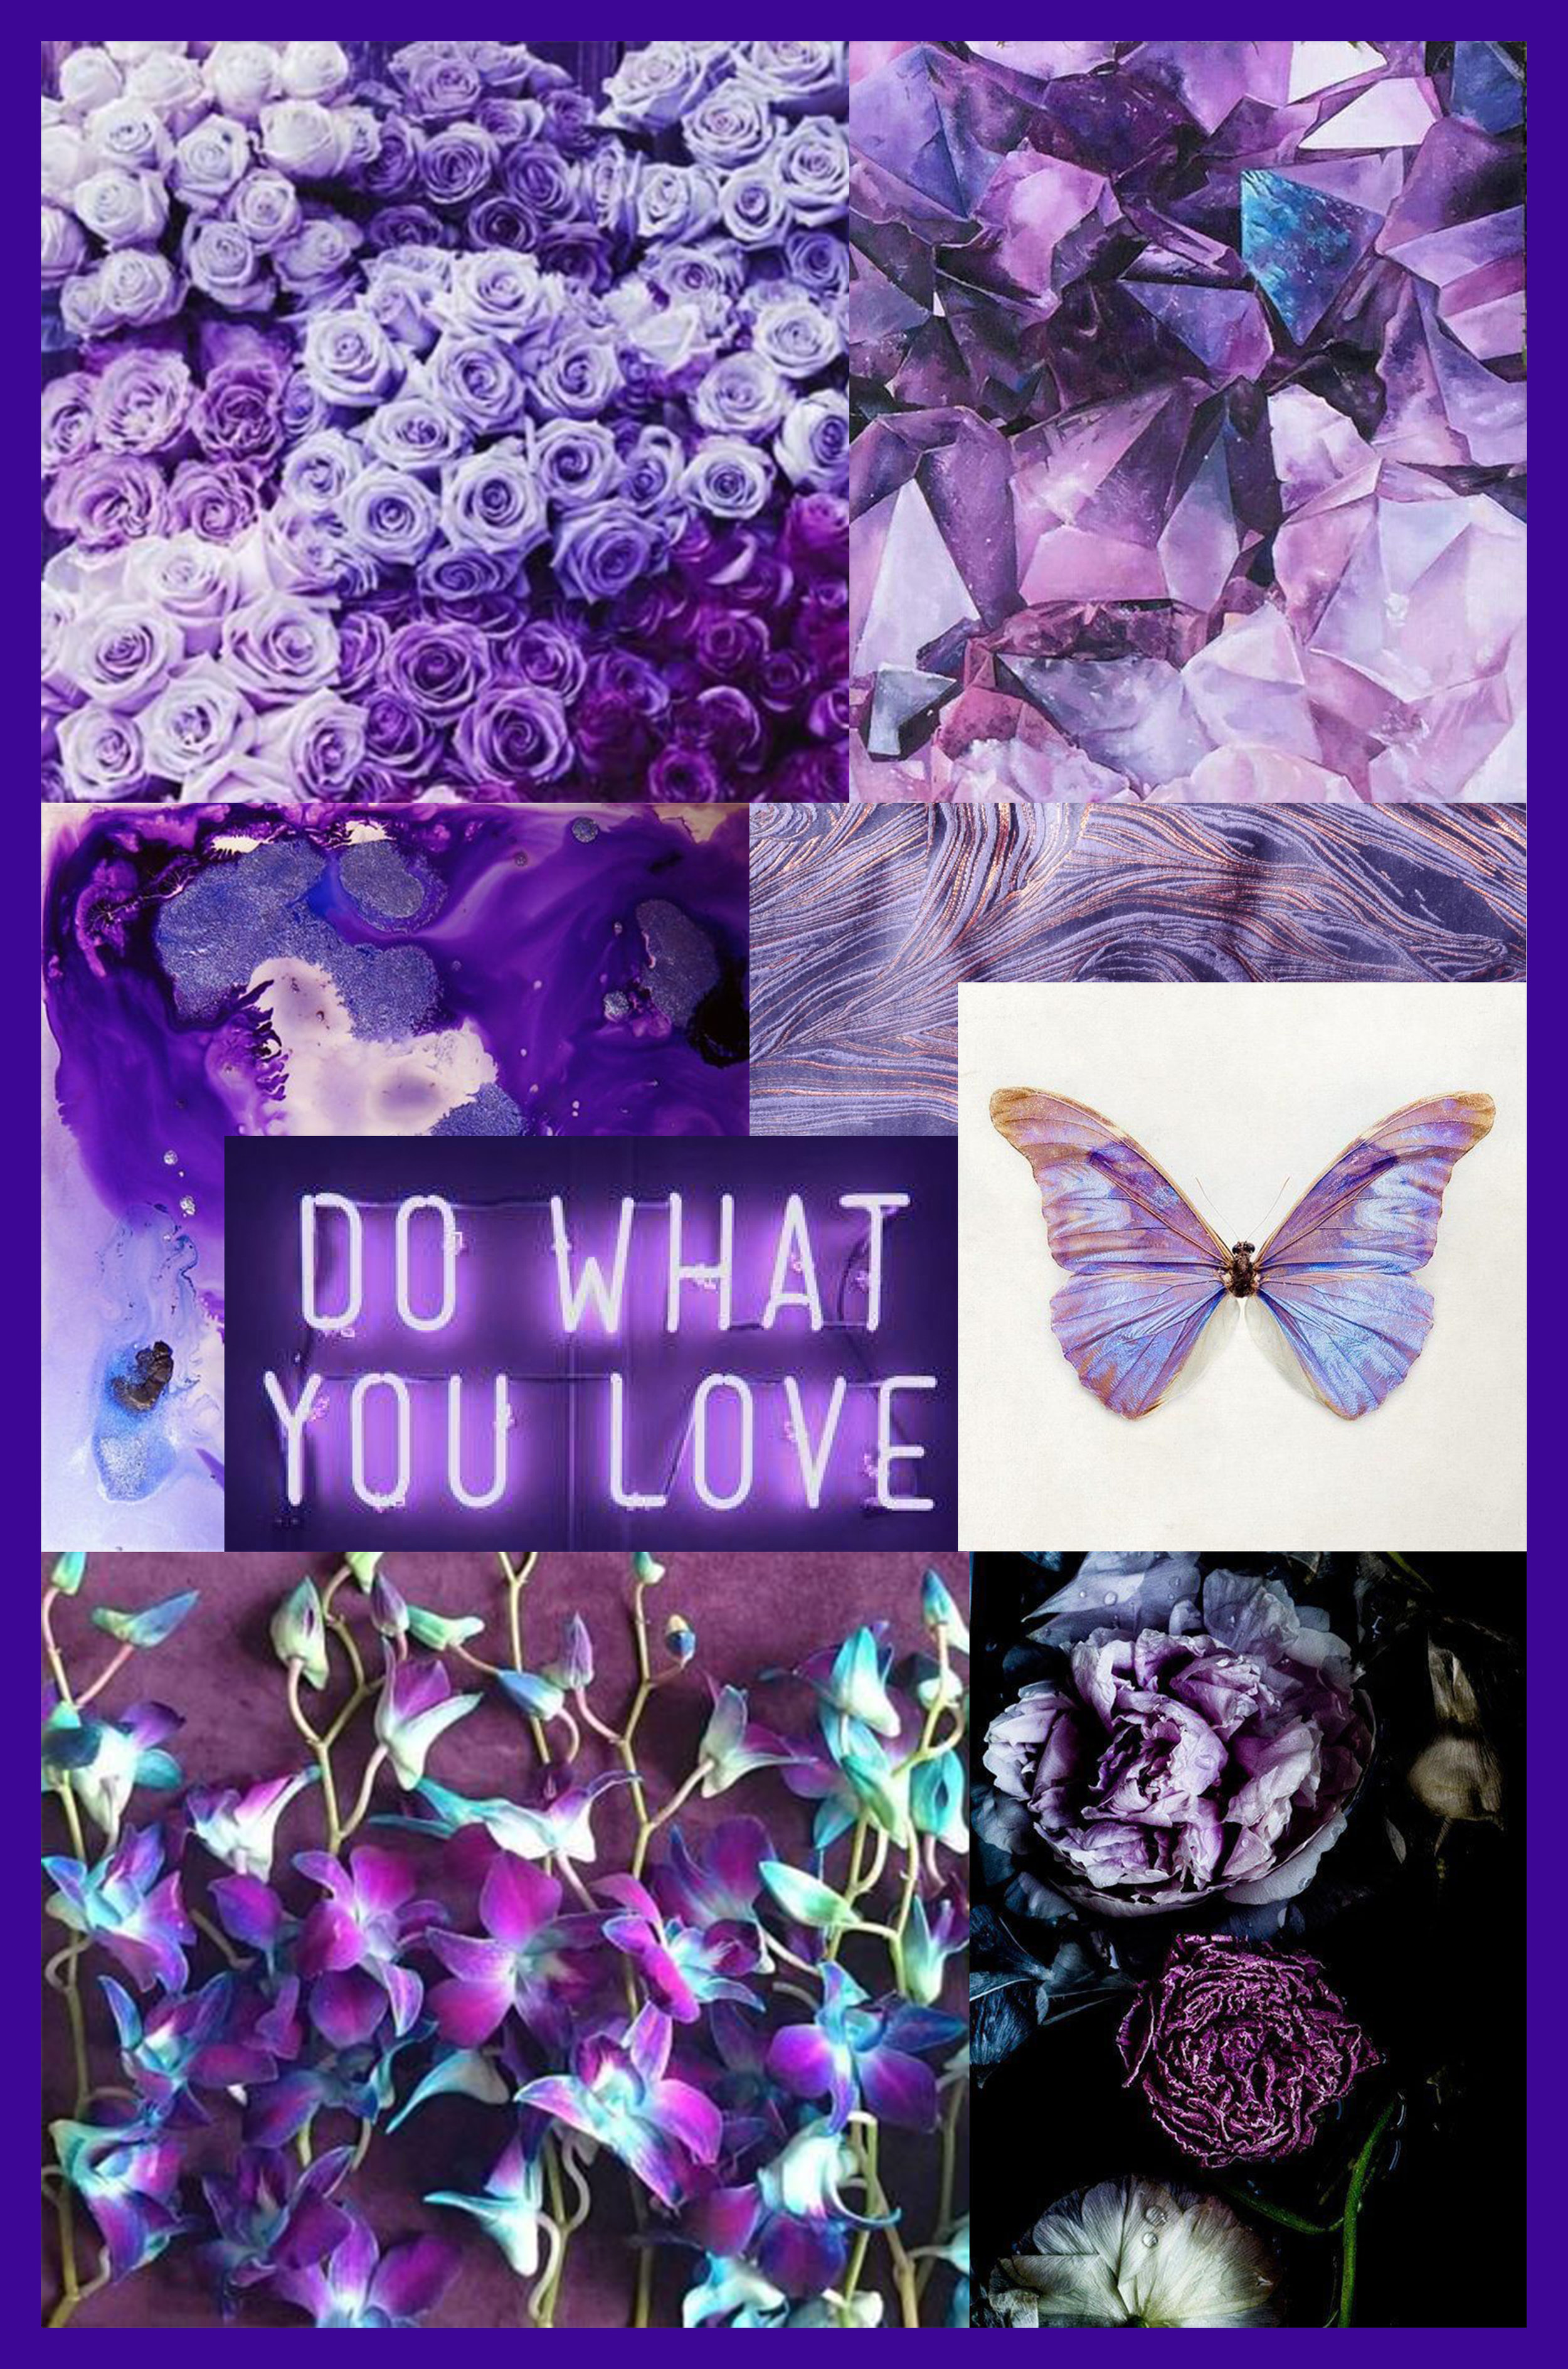 """""""We are living in a time that requires inventiveness and imagination. It is this kind of creative inspiration that is indigenous to Ultra Violet, a blue-based purple that takes our awareness and potential to a higher level."""" - Pantone"""